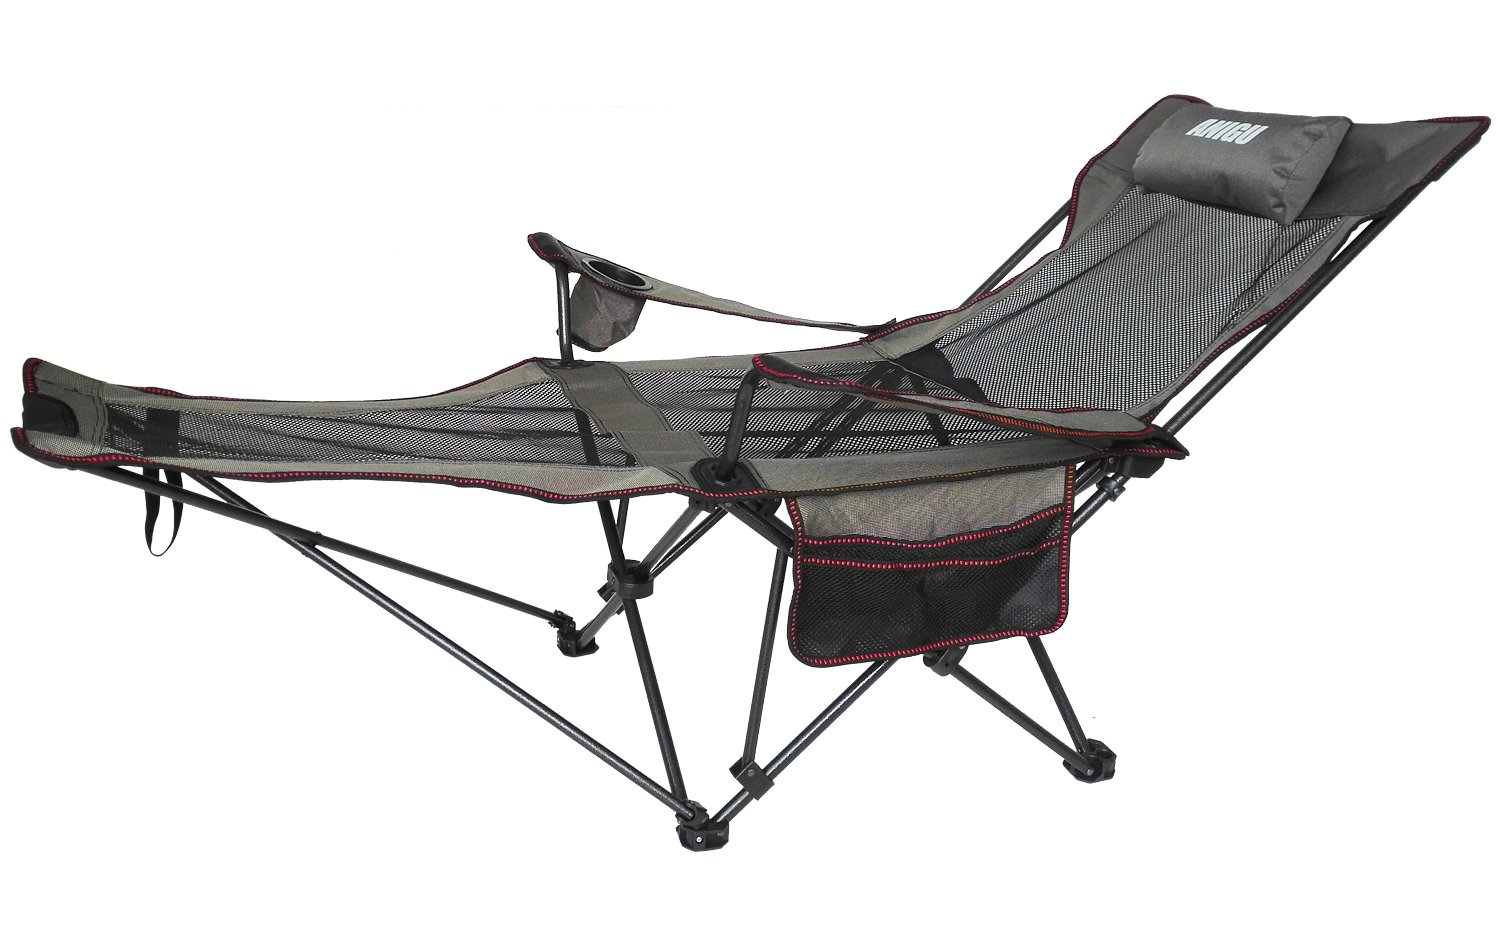 Anigu Mesh Lounge Reclining Folding Camp Chair with Footrest (Black) ANIGU1CA ANIGU1BLACKCA